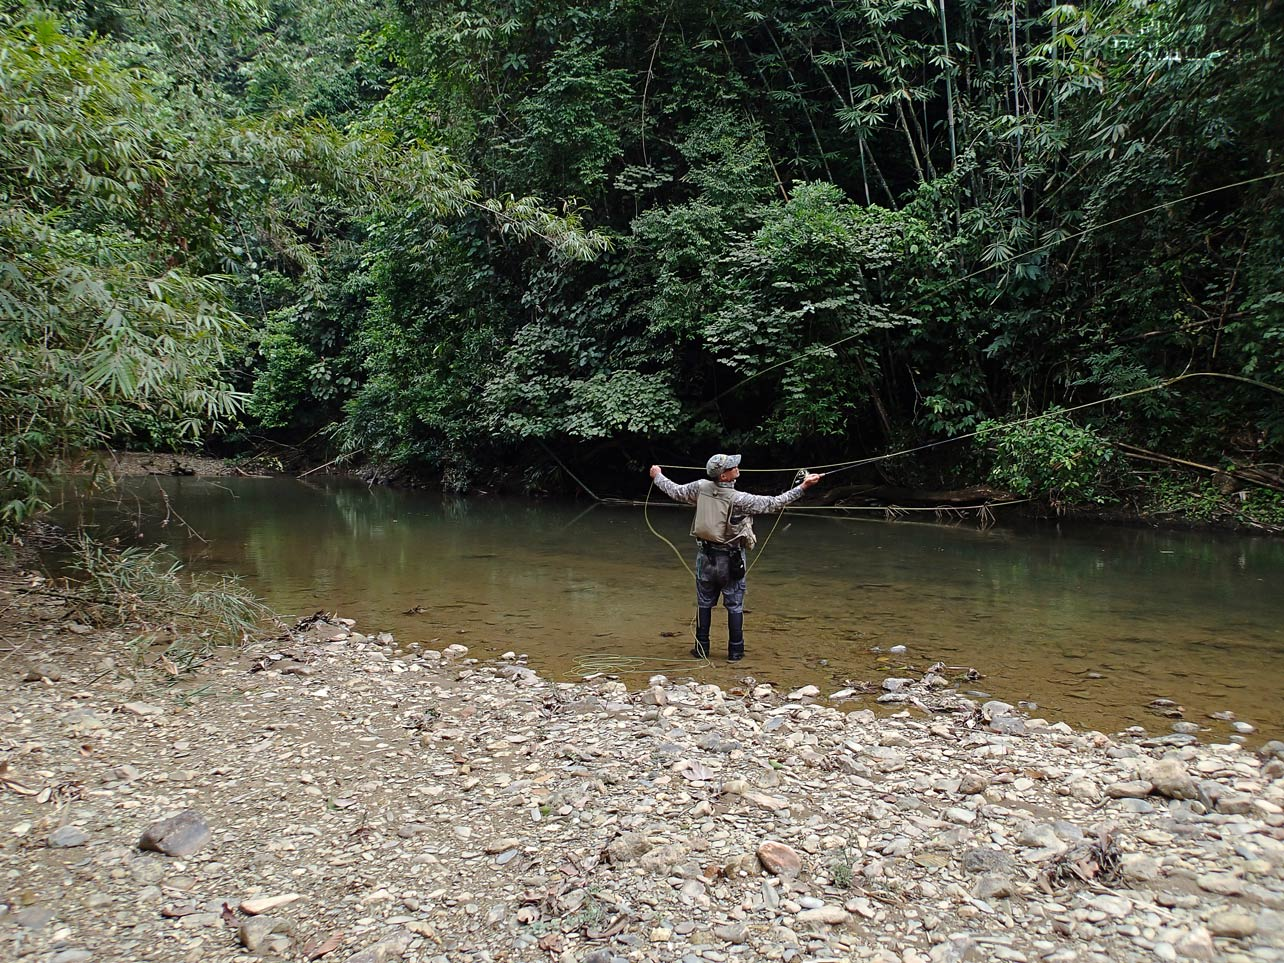 Fly fishing in the jungle